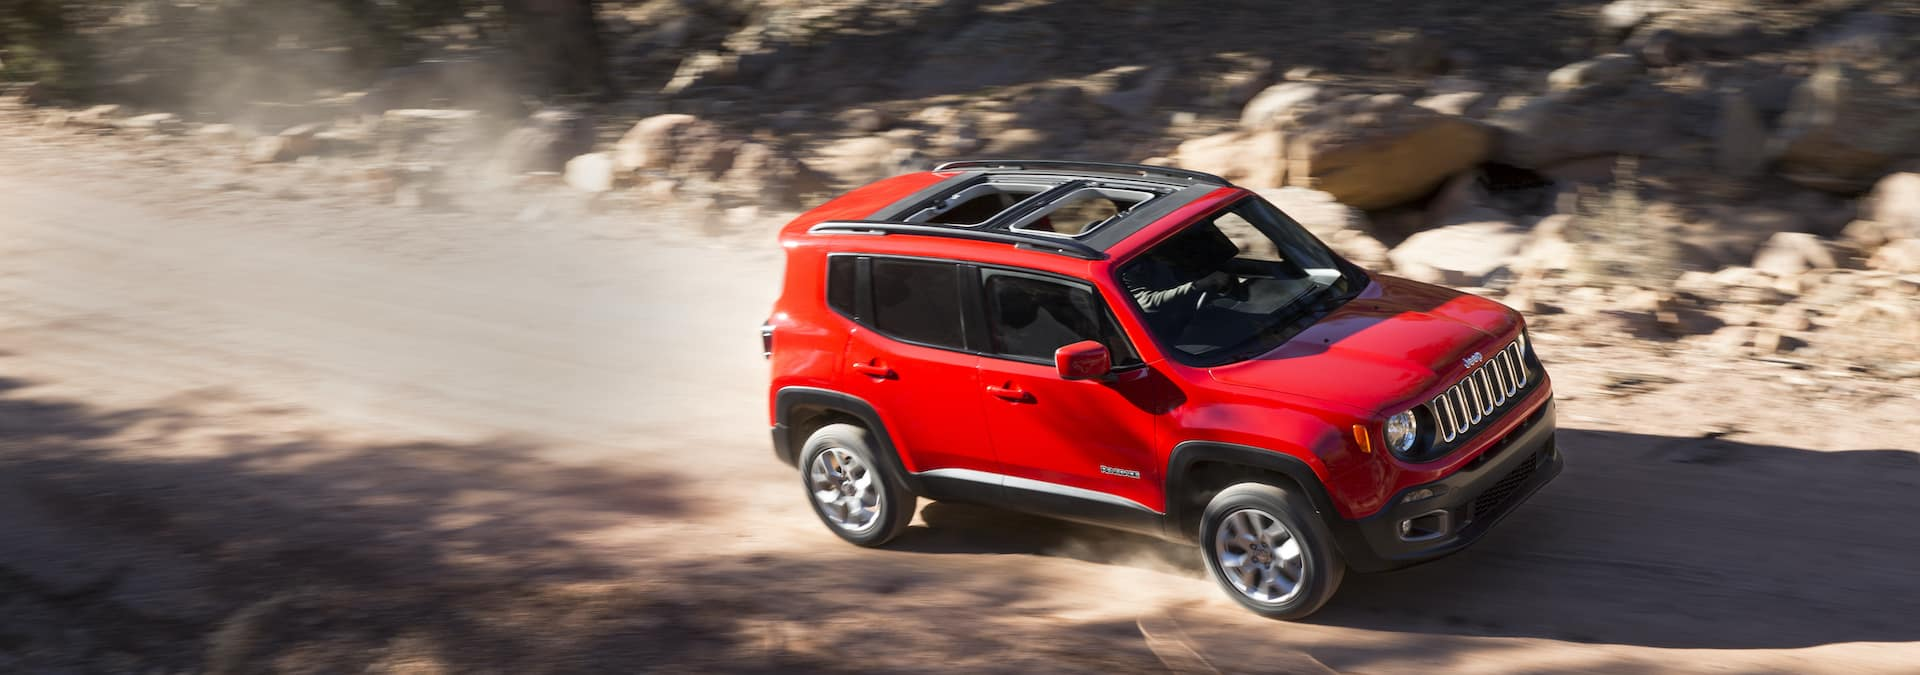 Compare the 2021 Jeep Renegade and the 2021 Chevrolet Equinox at Carolina CDJR in Elizabeth City, NC | 2021 Jeep Renegade driving on trail